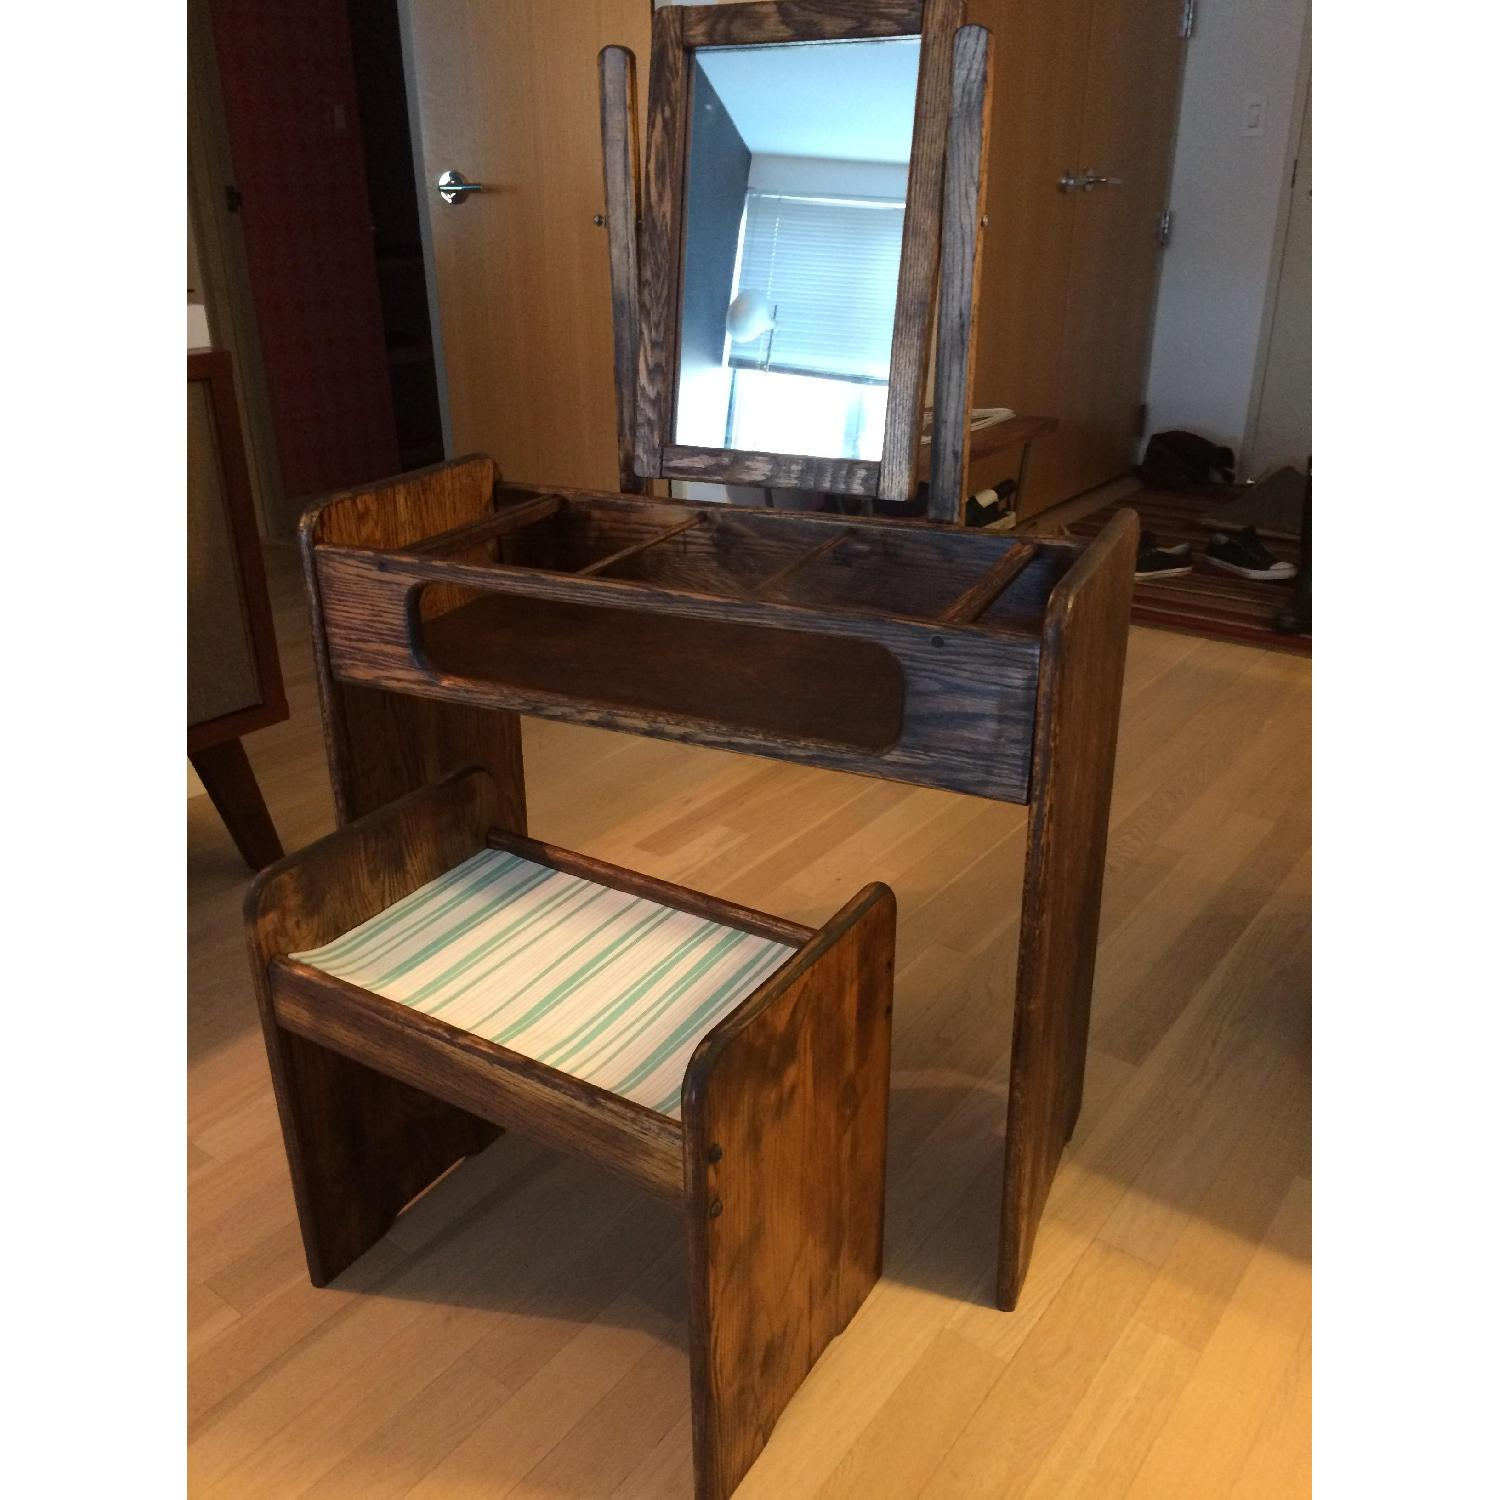 Make-Up/Vanity Table w/ Bench - image-2